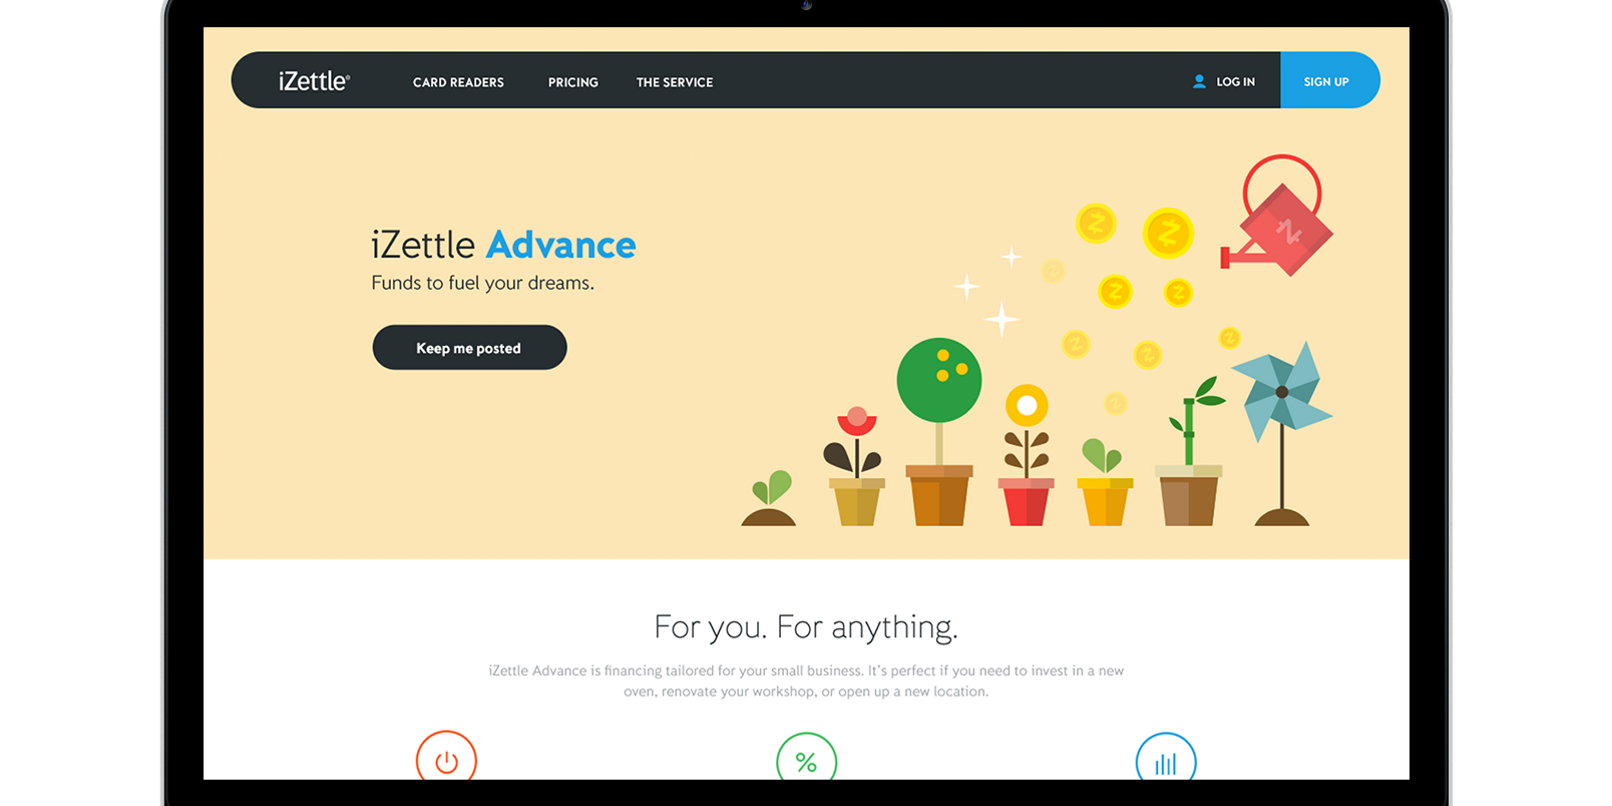 Izettle Advance Is Like Square Capital For Small Uk And European